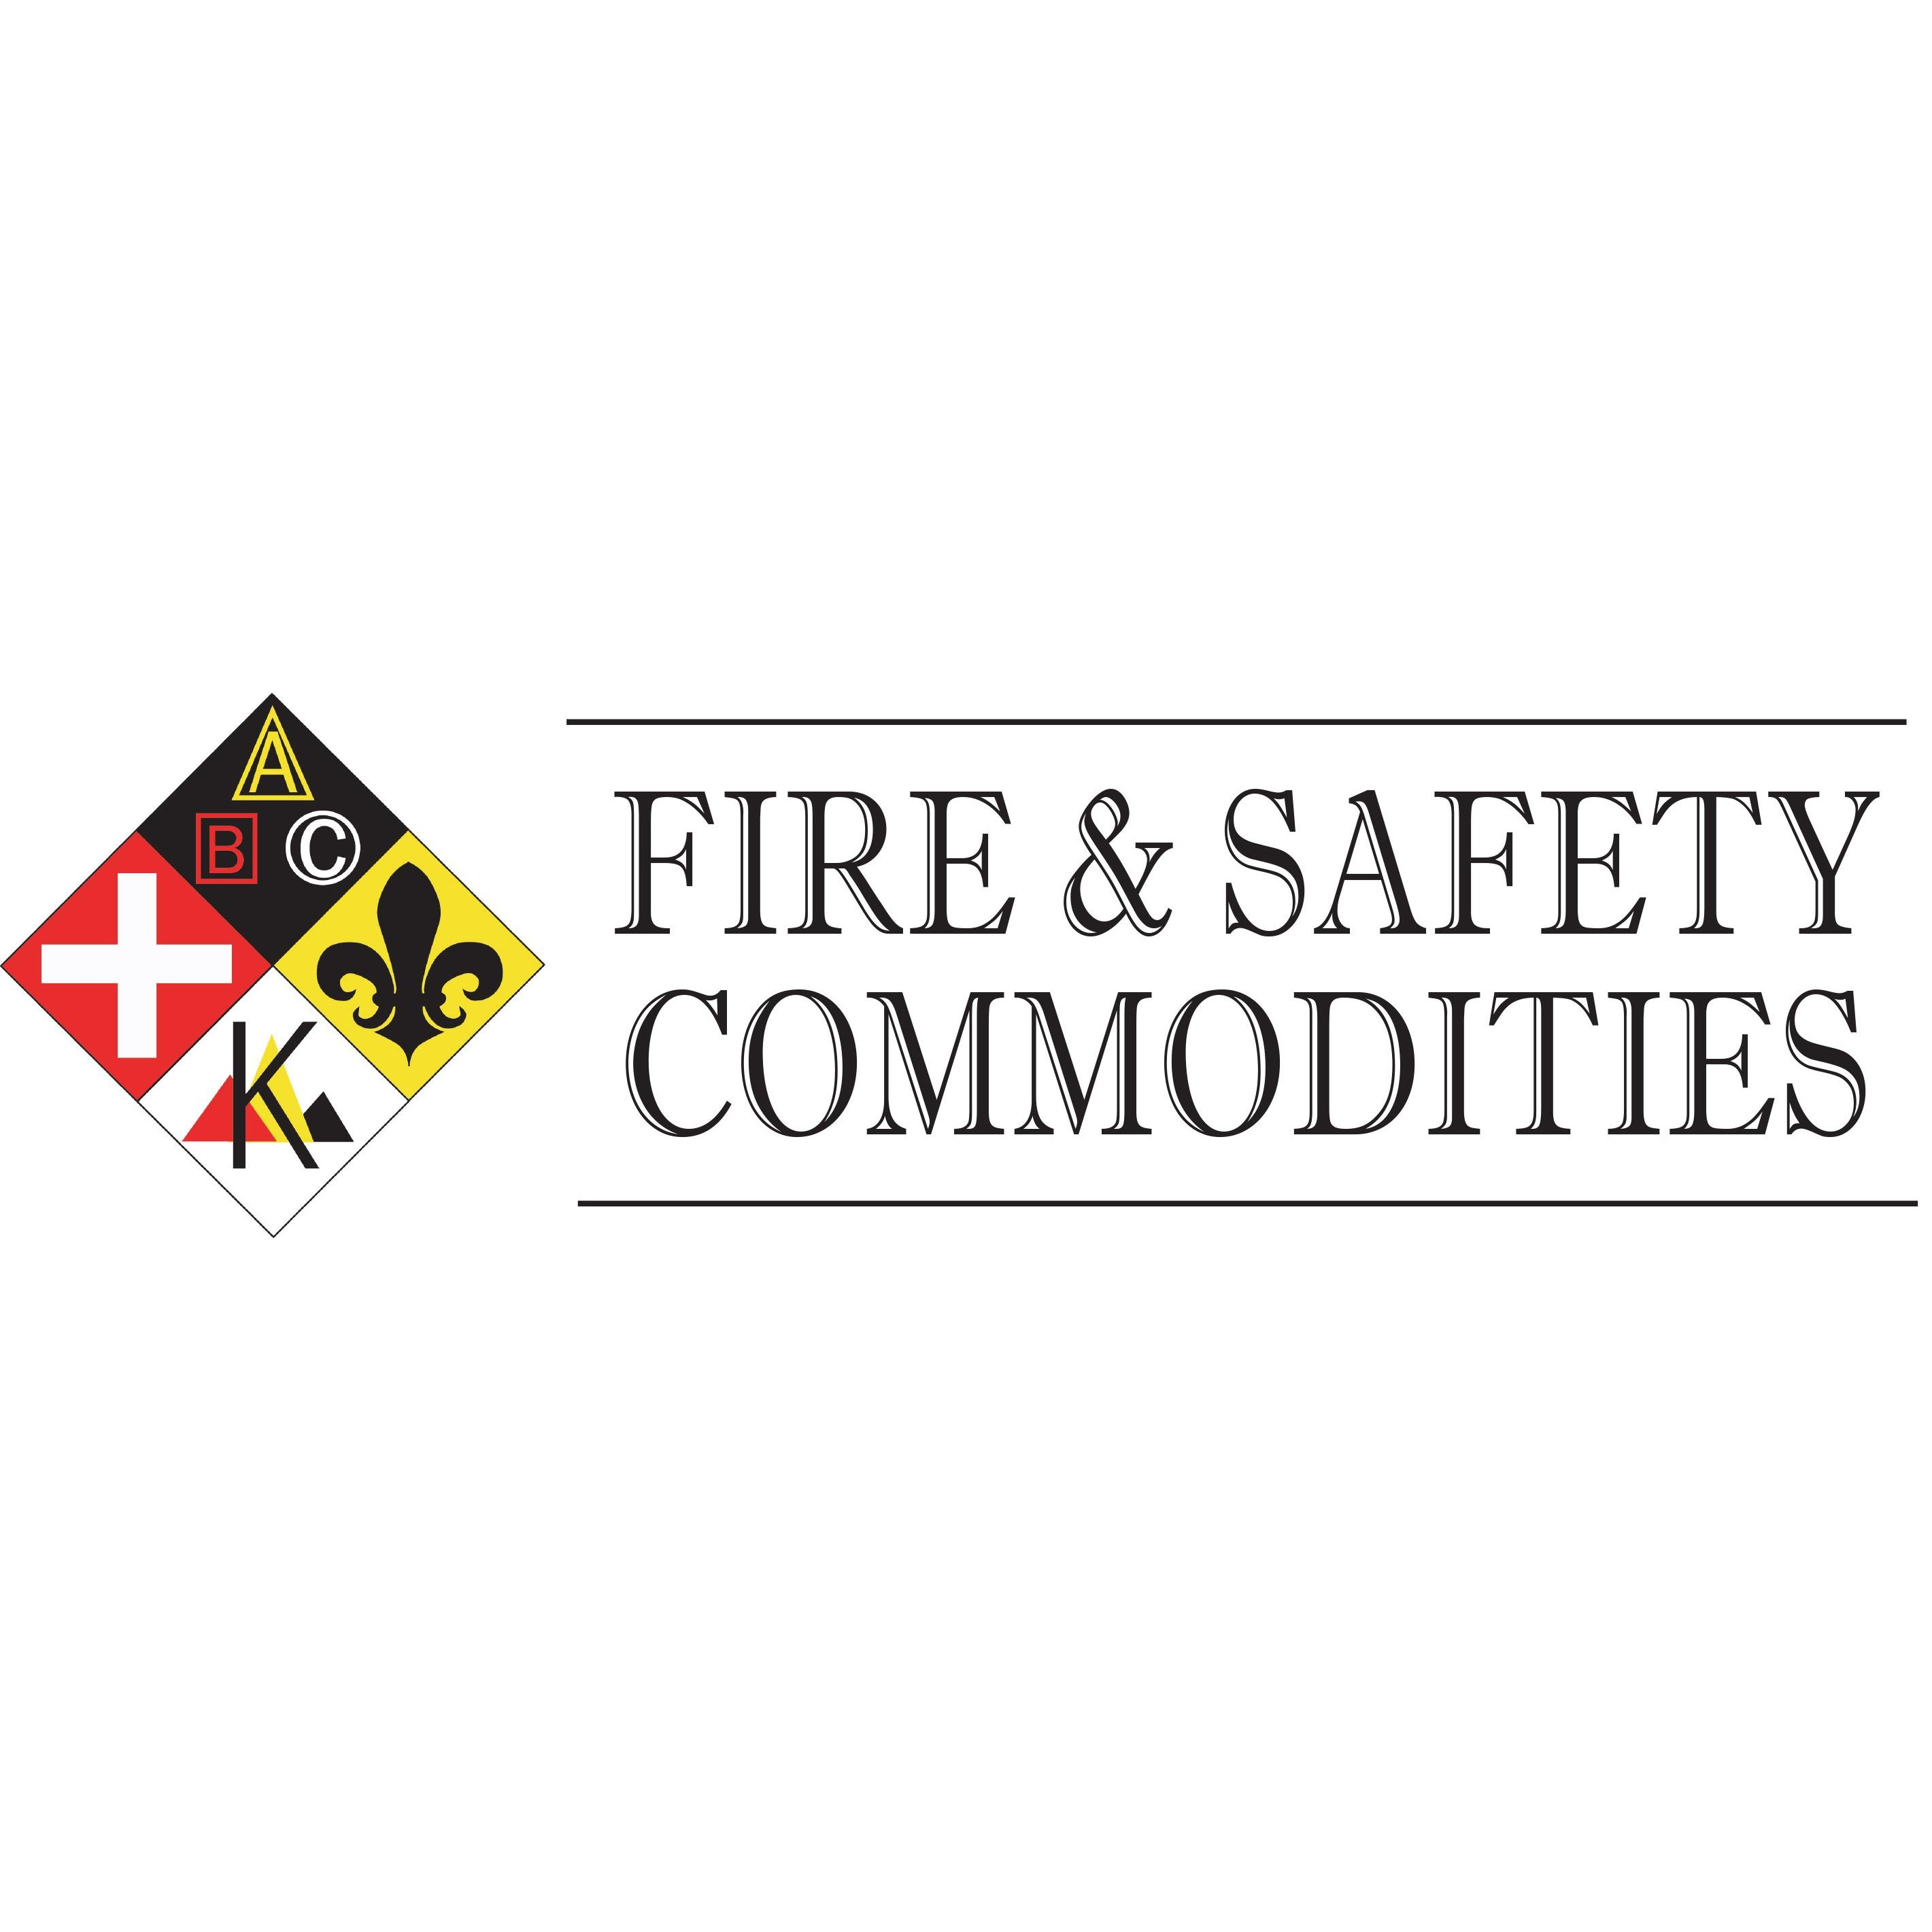 Fire & Safety Commodities image 8